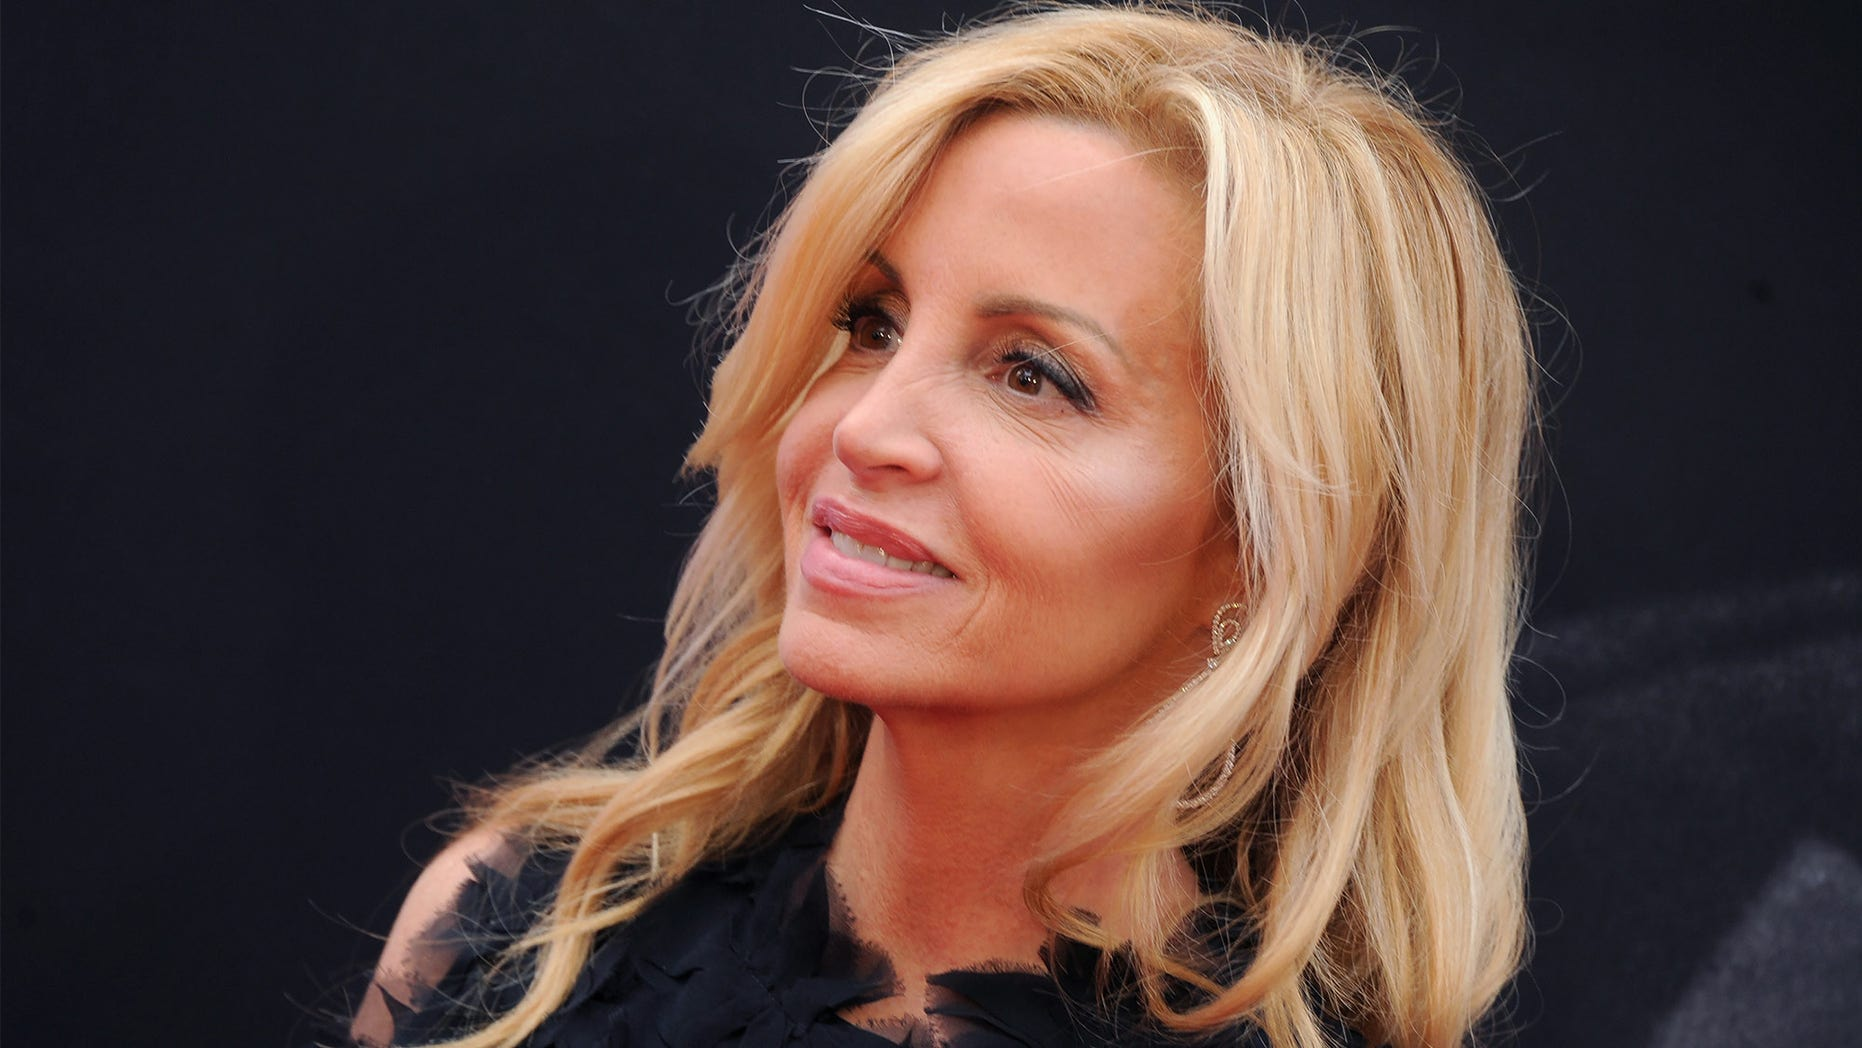 Camille Grammer flaunts her sexy beach body while enjoying her Hawaiian get away.